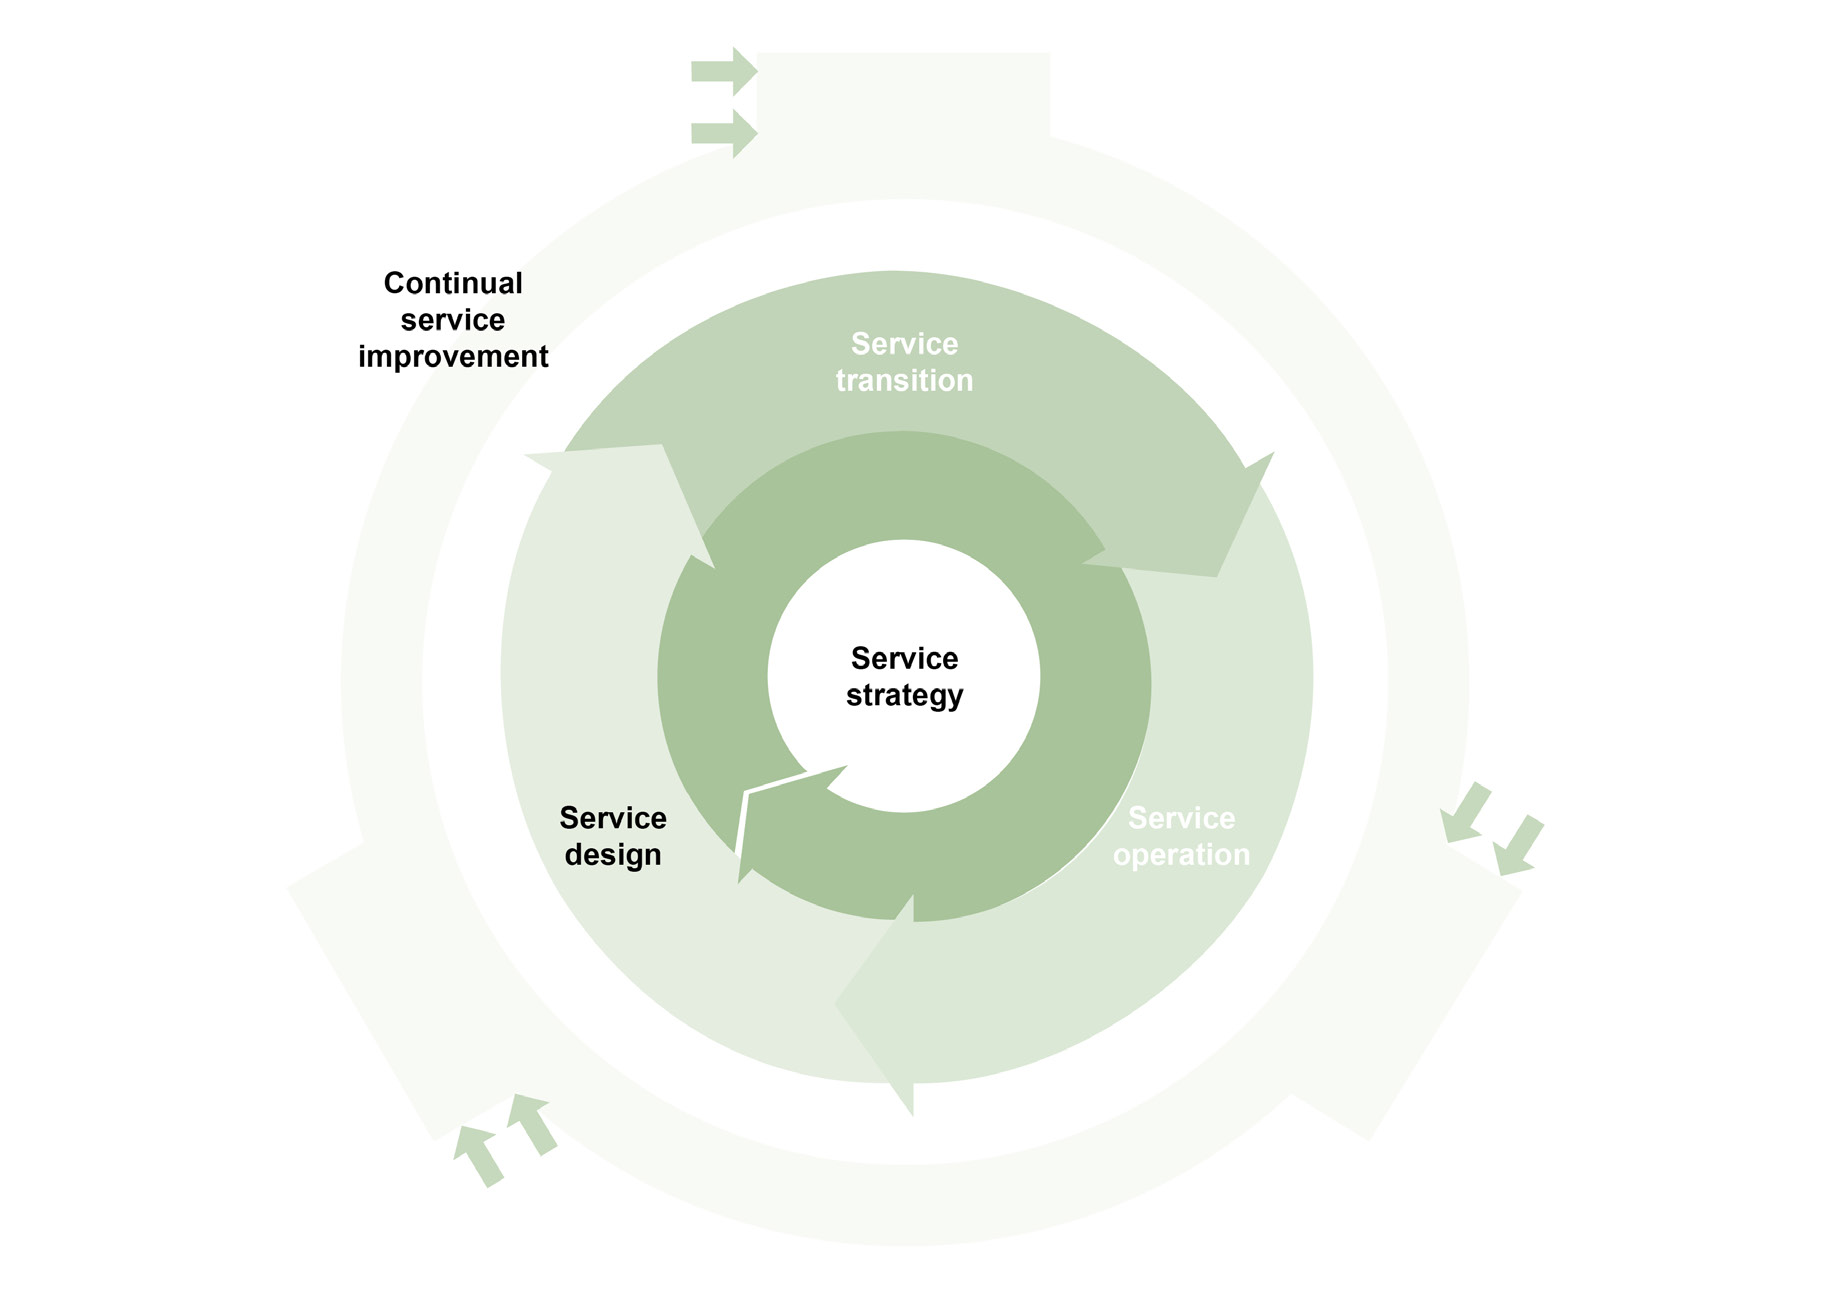 continual service improvement. Continual service improvement is integral in all other lifecycle phases, each stage of the lifecycle is dynamic and supports the other stages.